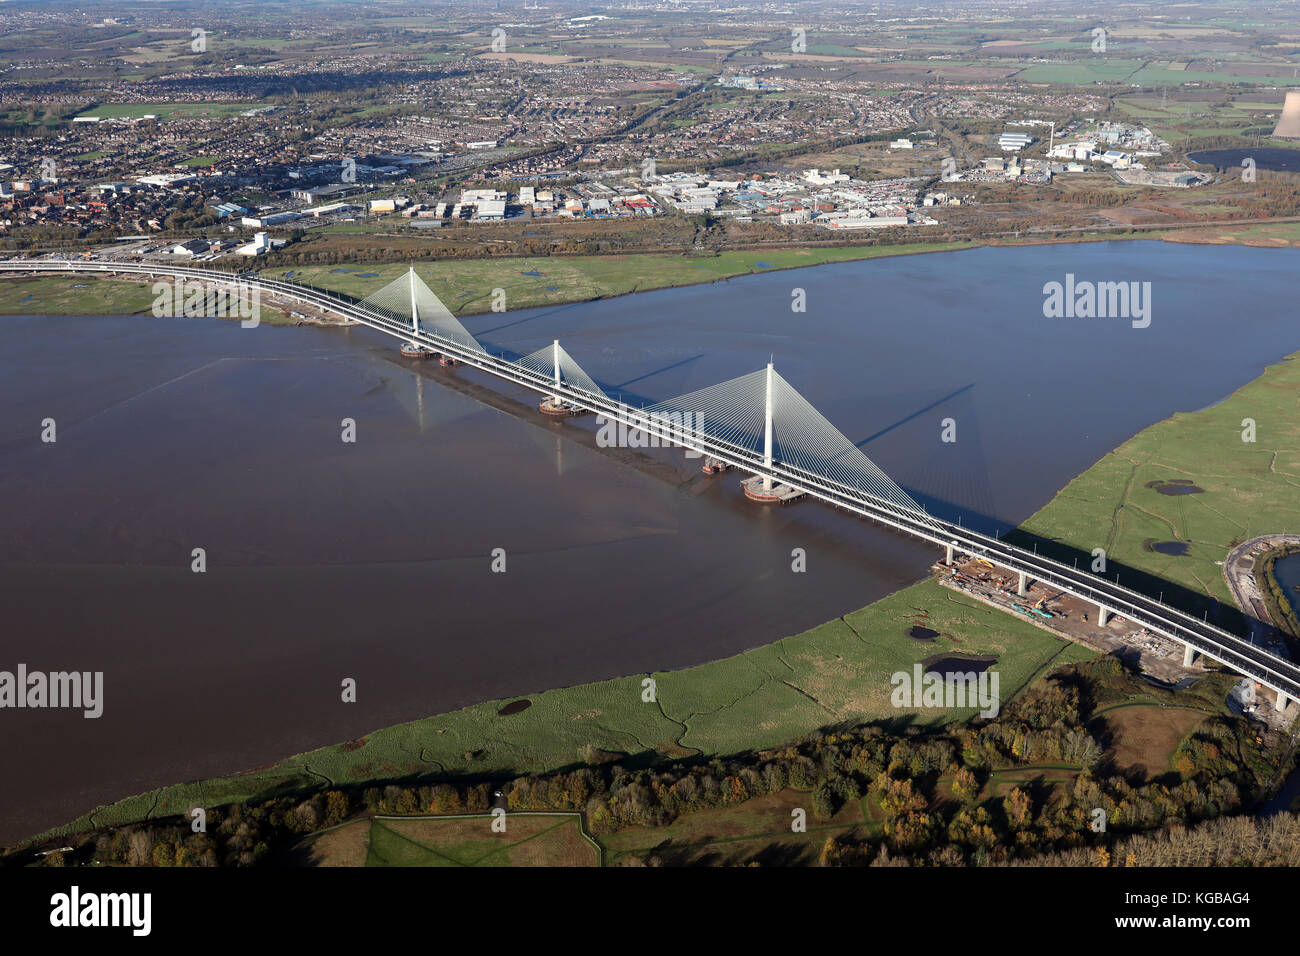 aerial view of the new Mersey Gateway linking Widnes & Runcorn, Cheshire, UK - Stock Image